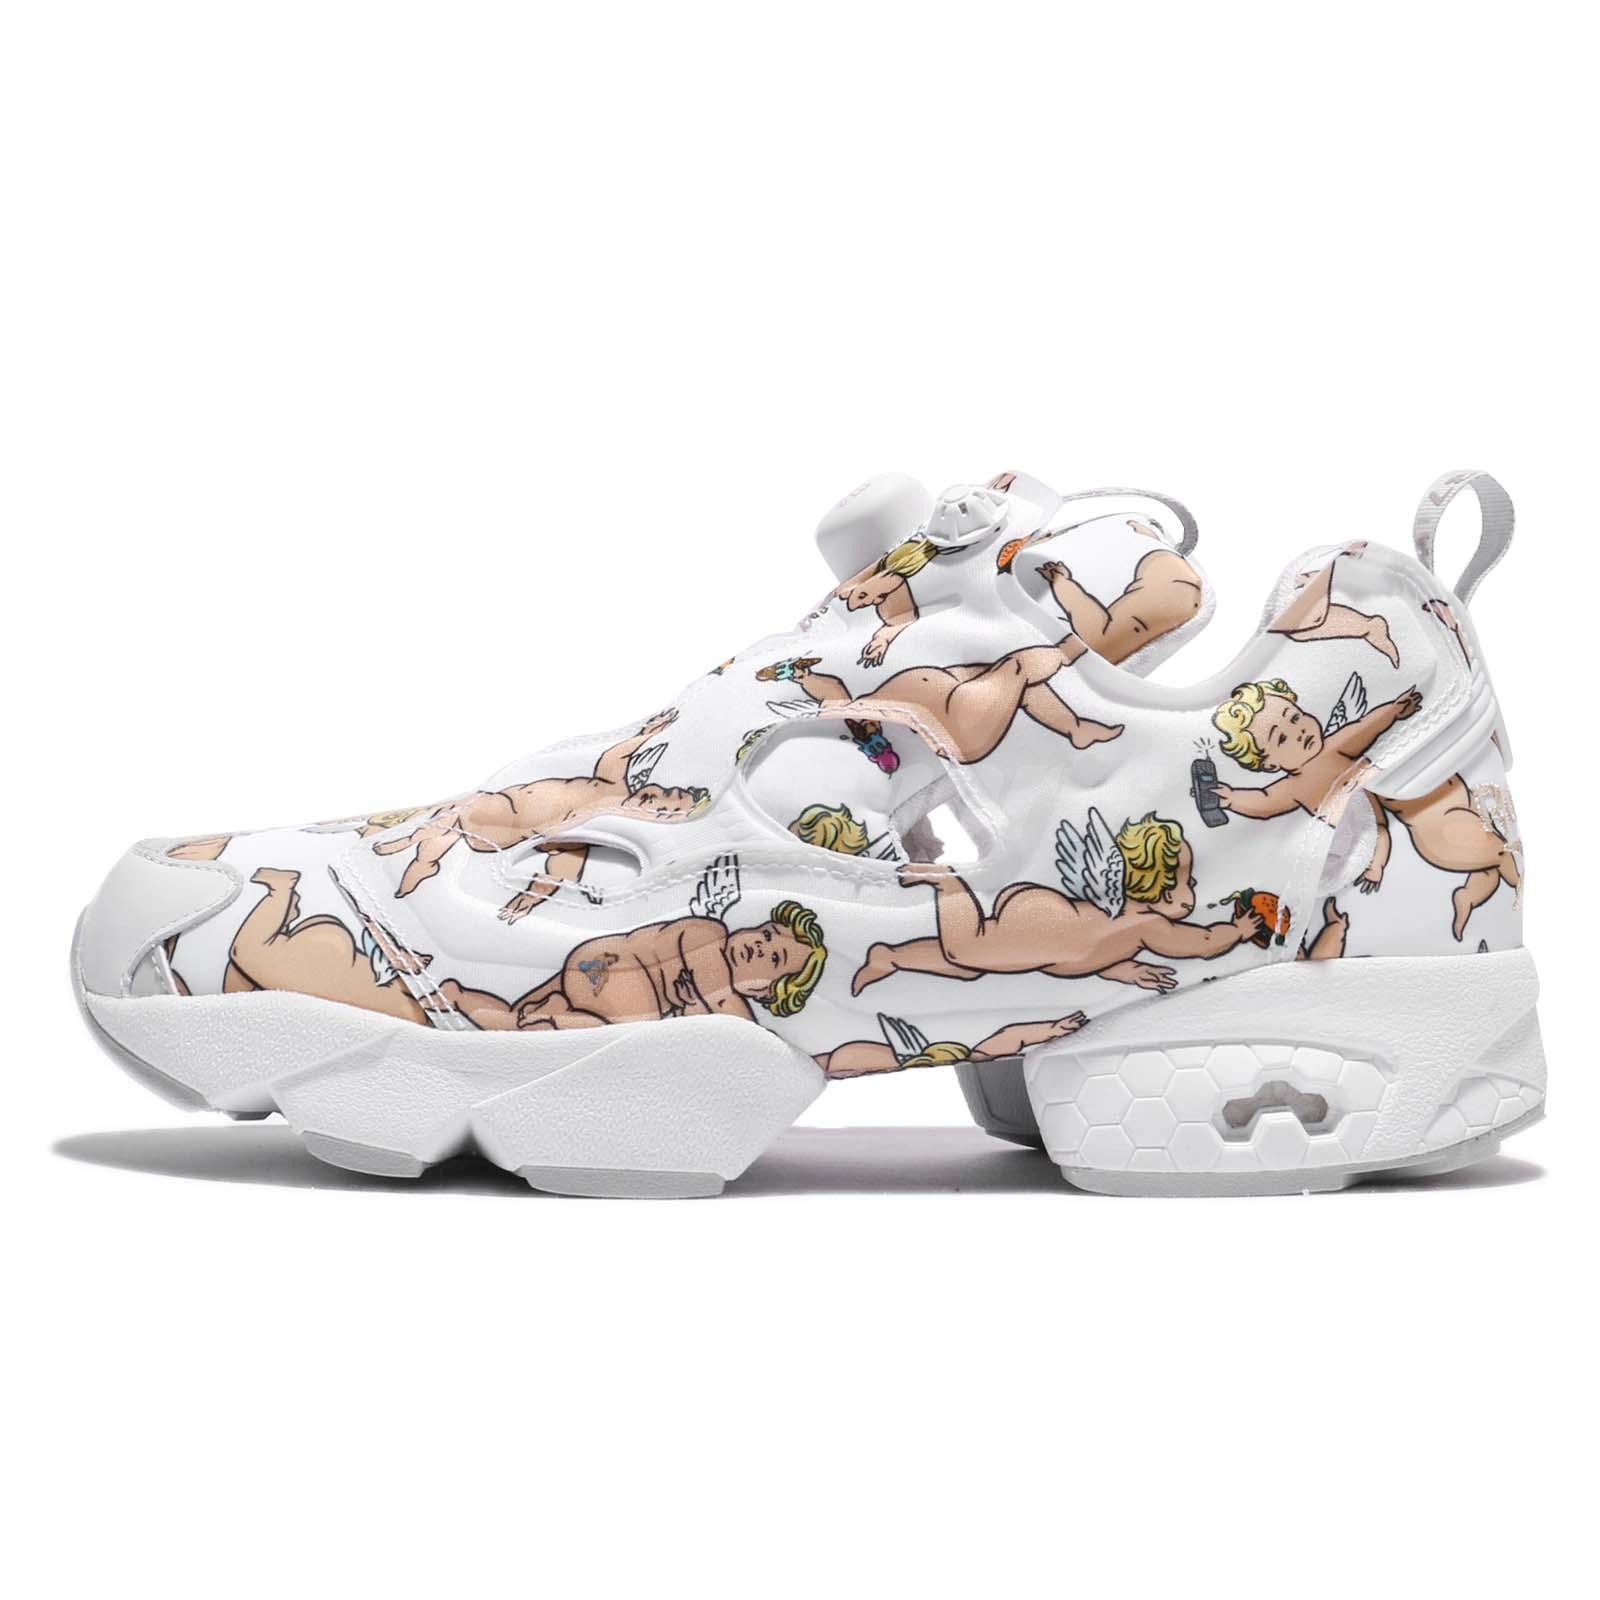 1ee5db4b6746 ... where to buy reebok instapump fury la city world tour pack cupid men  shoes sneakers bd4747